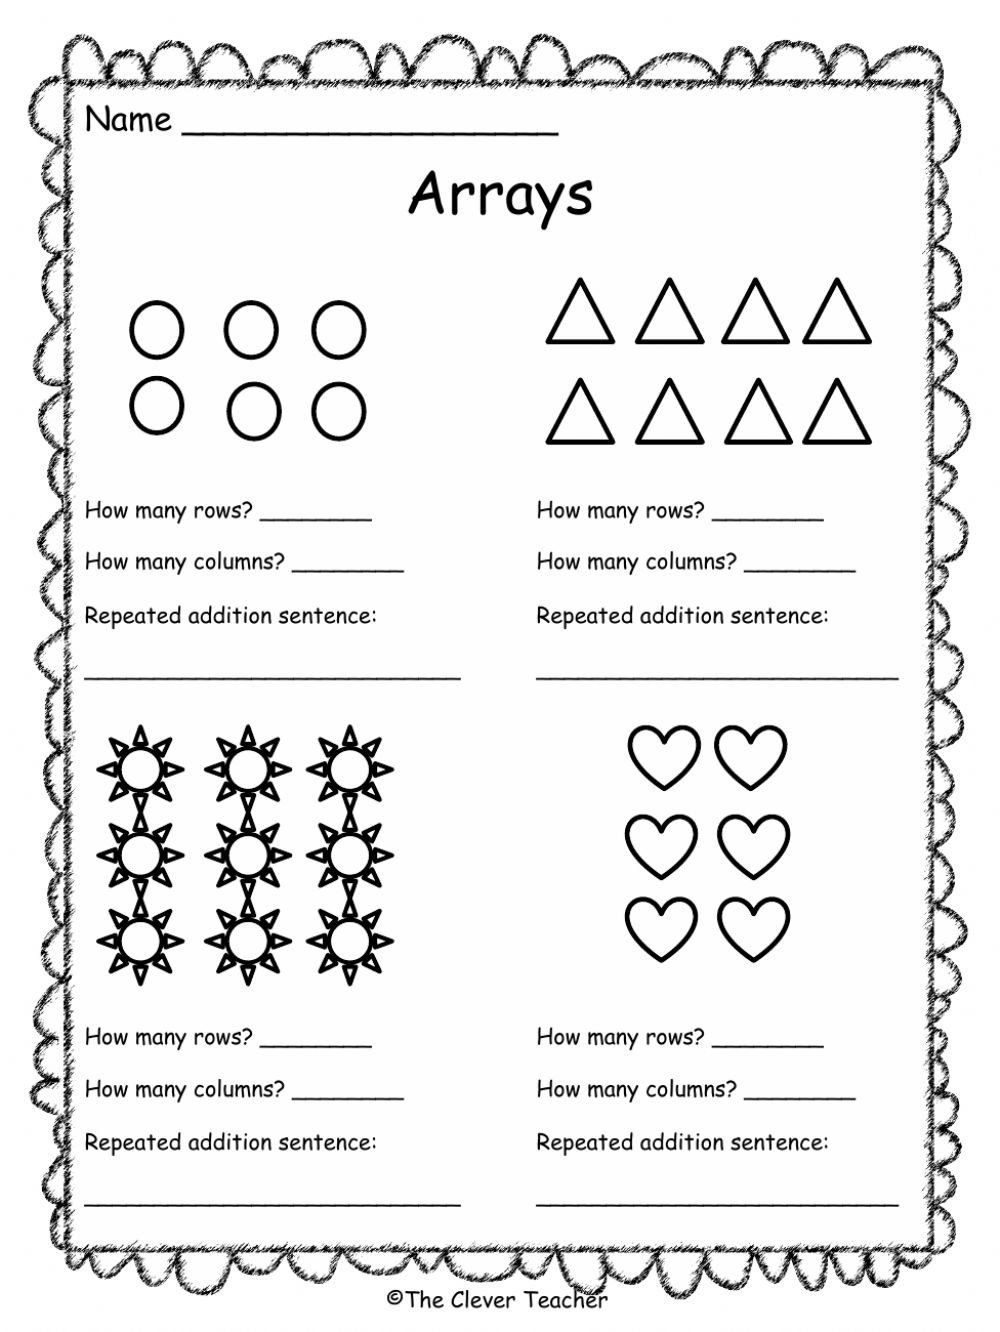 medium resolution of Repeated Addition and Arrays Arrays Interactive Worksheet   Array worksheets